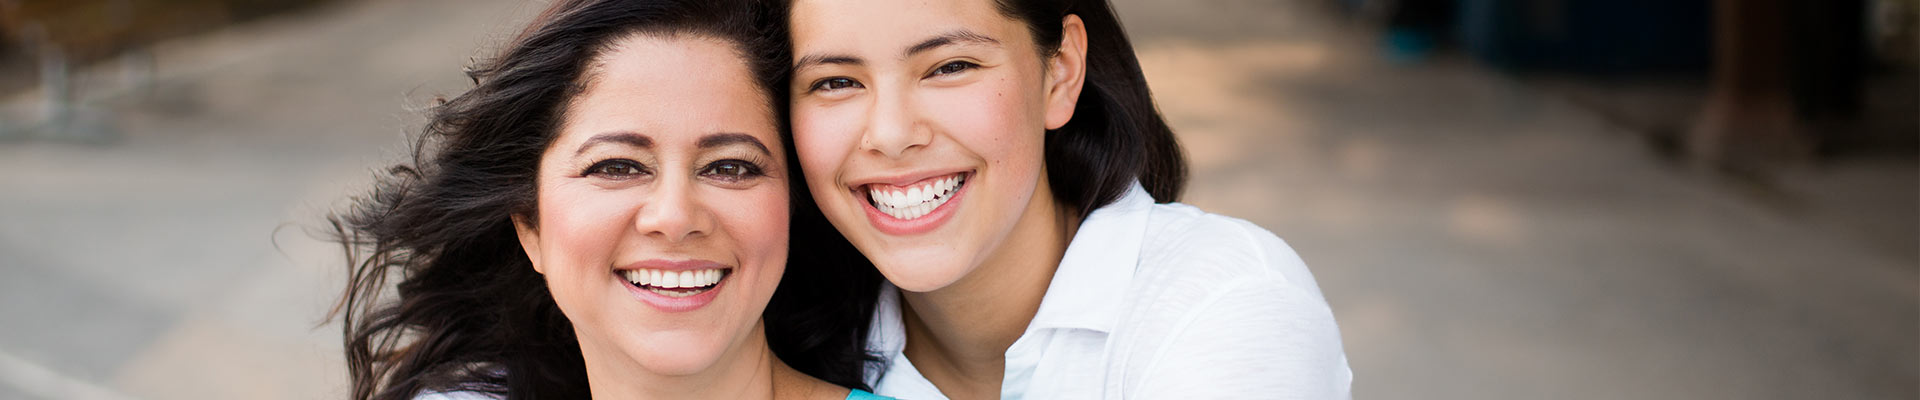 Mother and Daughter Finger Lakes Orthodontics Horseheads Corning, NY